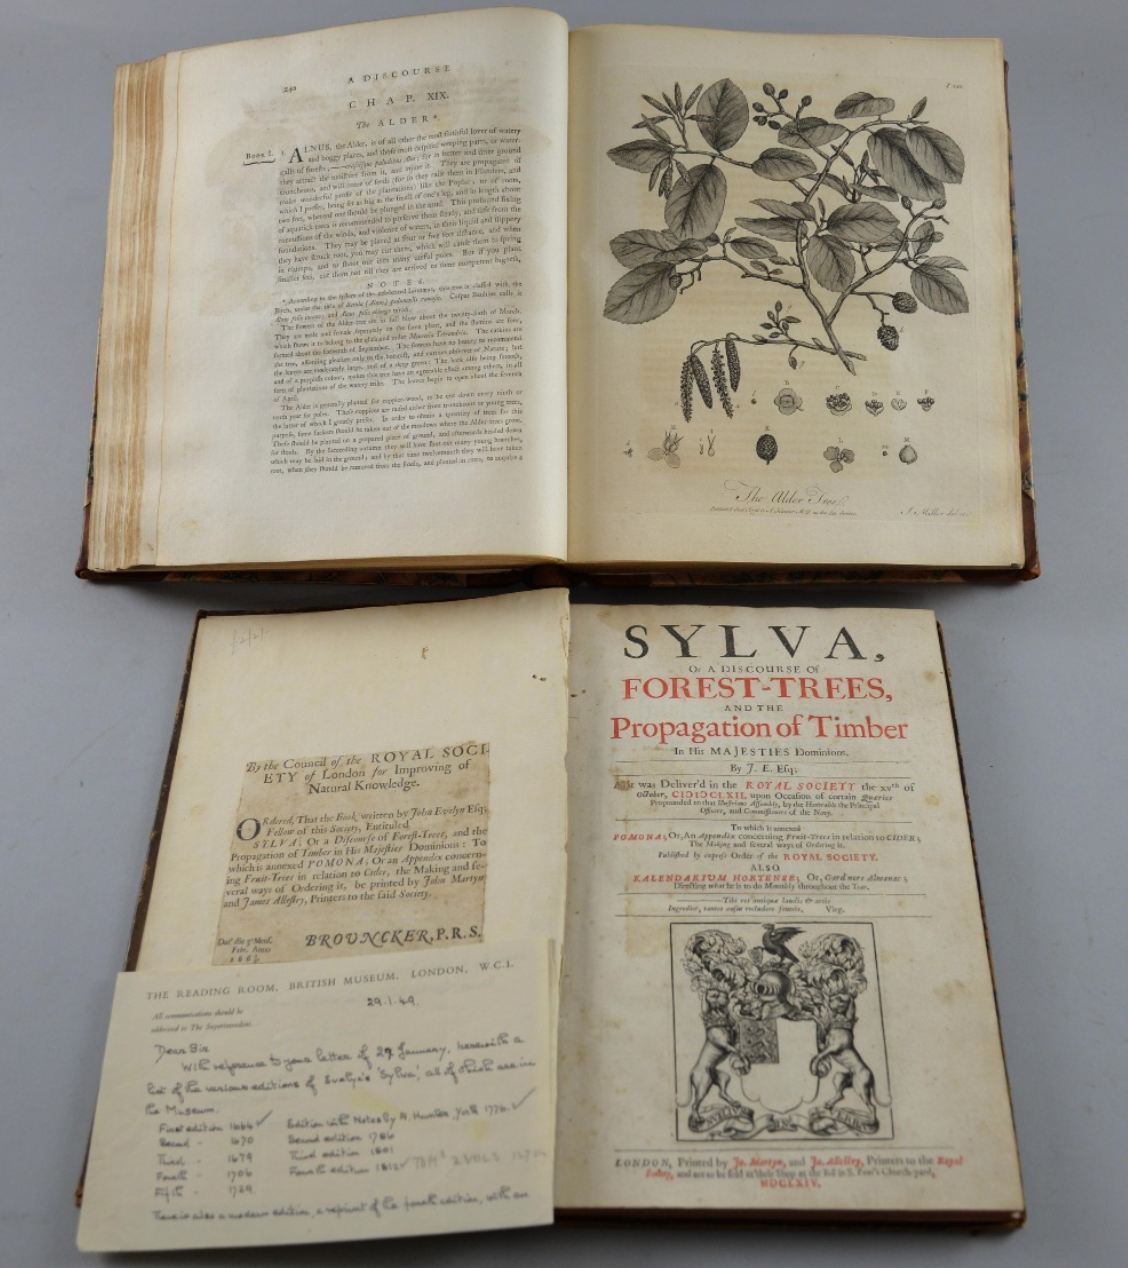 Evelyn, John.  Sylva, or a Discourse of Forest-Trees, and the Propagation of Timber in His Majesties Dominions . London: Jo. Martyn and Ja. Allestry, Printers to the Royal Society, 1664. Image source:    Ewbank's